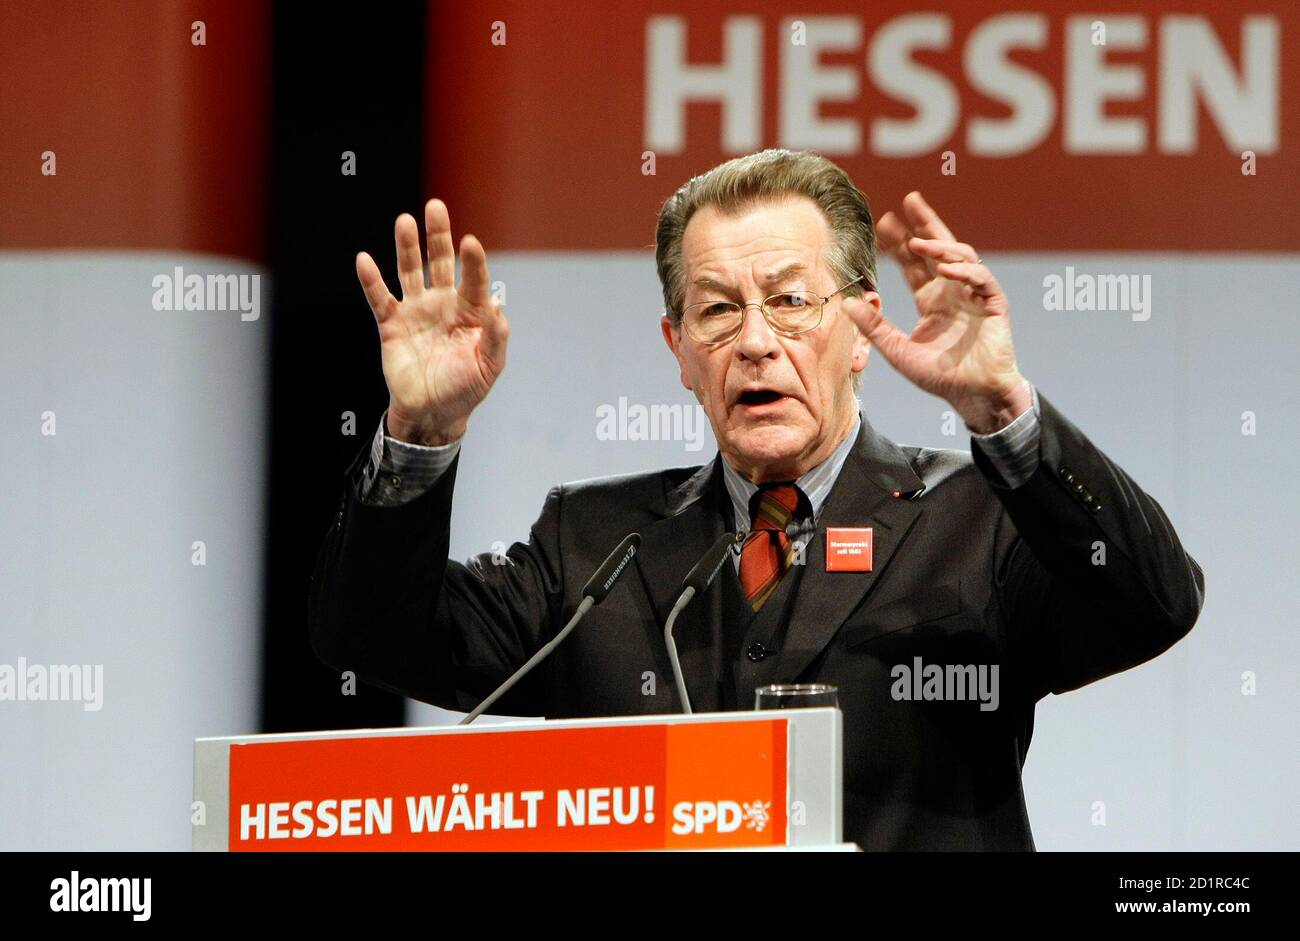 Franz Muentefering, leader of Germany's Social Democratic Party SPD, delivers a speech during an extraordinary party convention in Alsfeld, December 13, 2008.     REUTERS/Thomas Bohlen   (GERMANY) Stock Photo